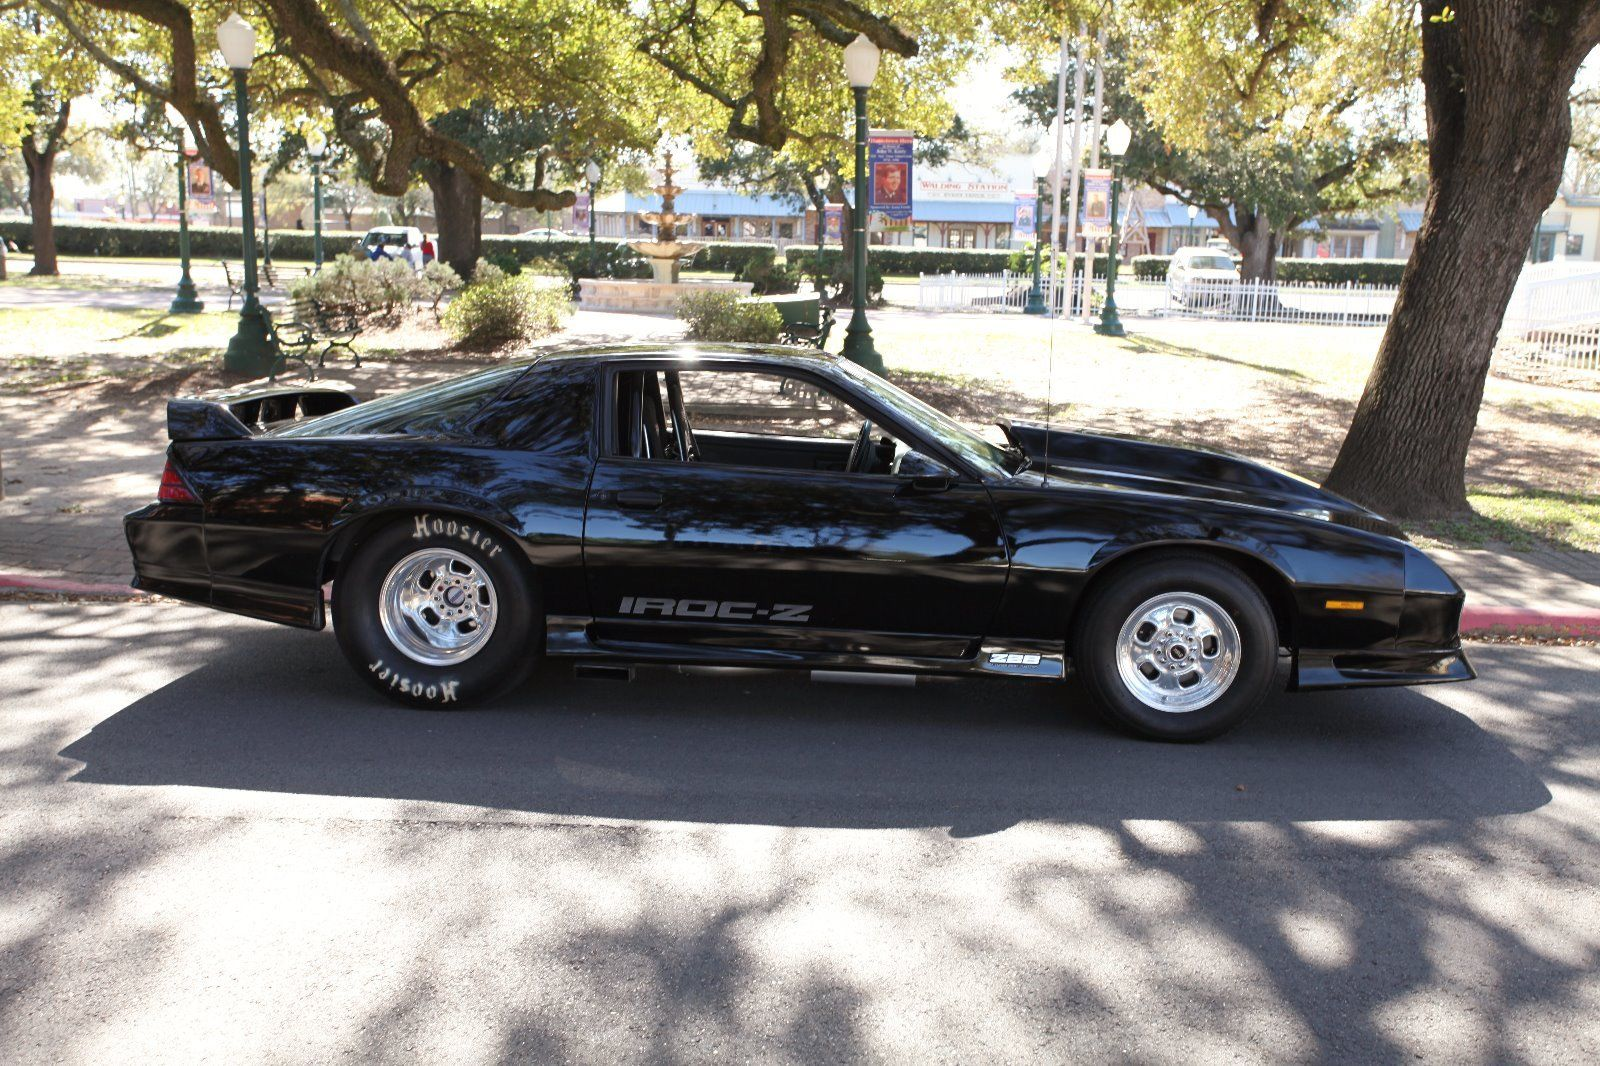 Money No Object: This 1991 Chevrolet Camaro Looks Like A Factory-Built Pro Street Concept – CLEAN!